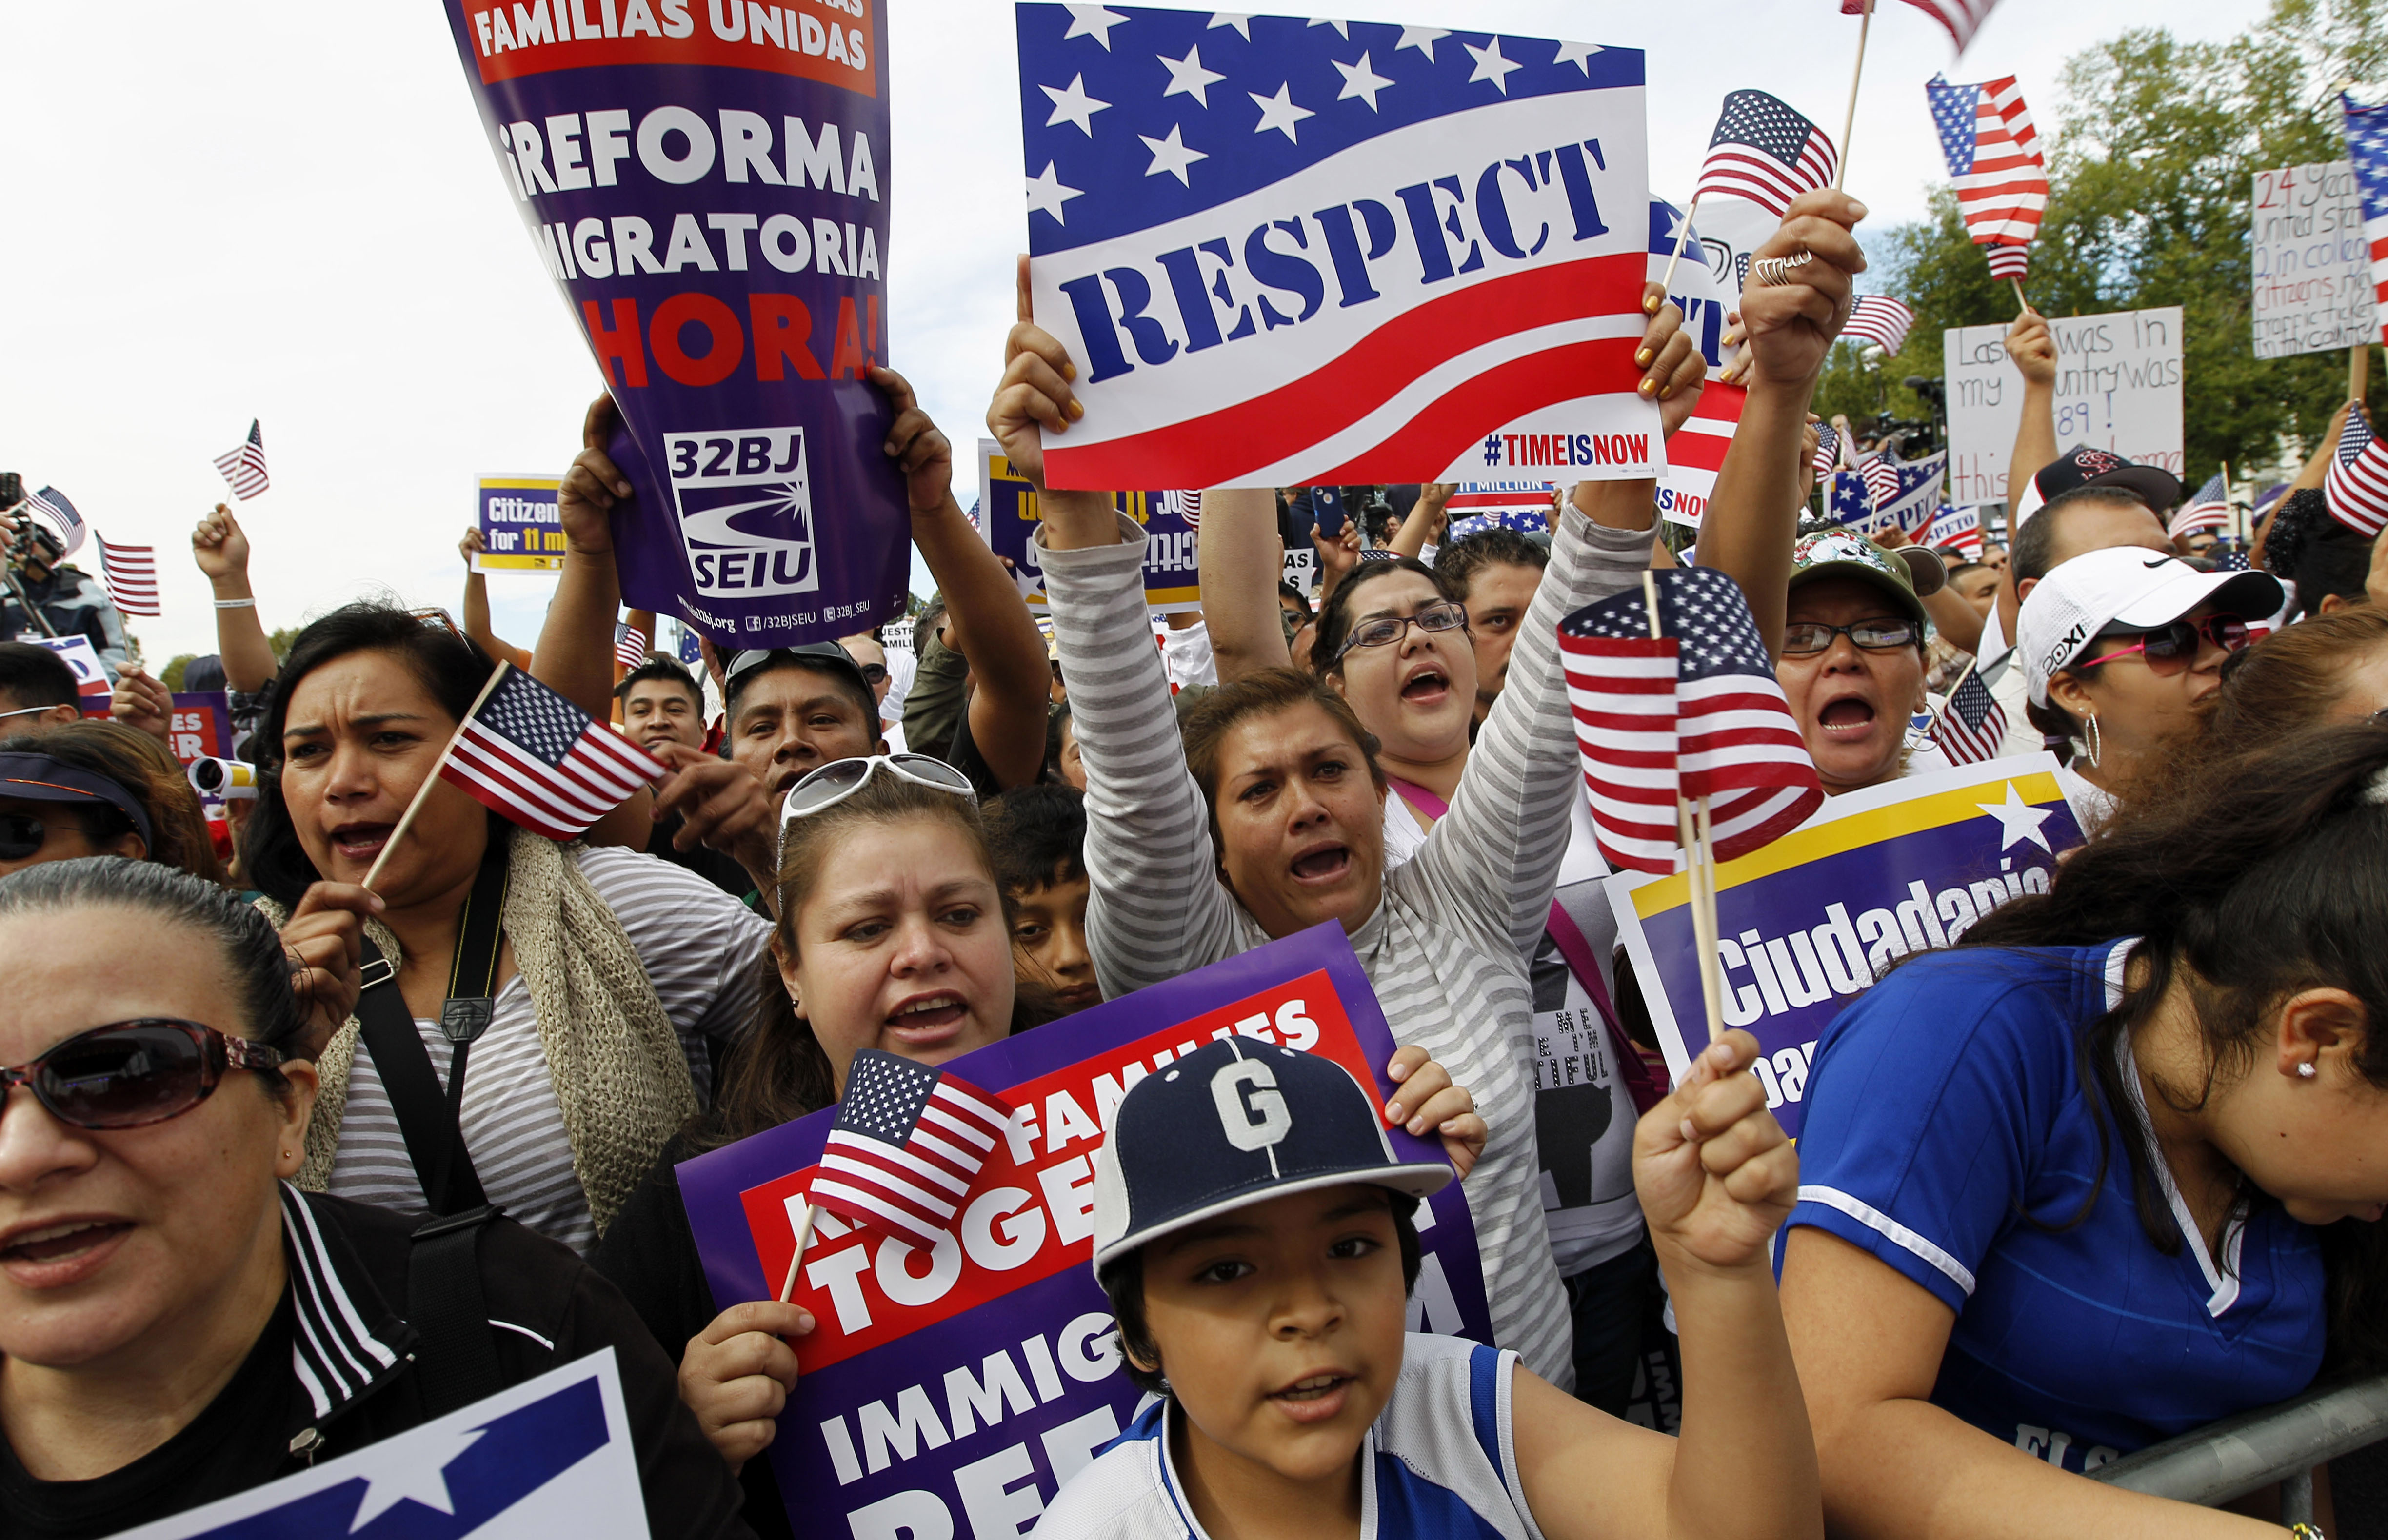 Pressing on for Immigration Reform - Center for American